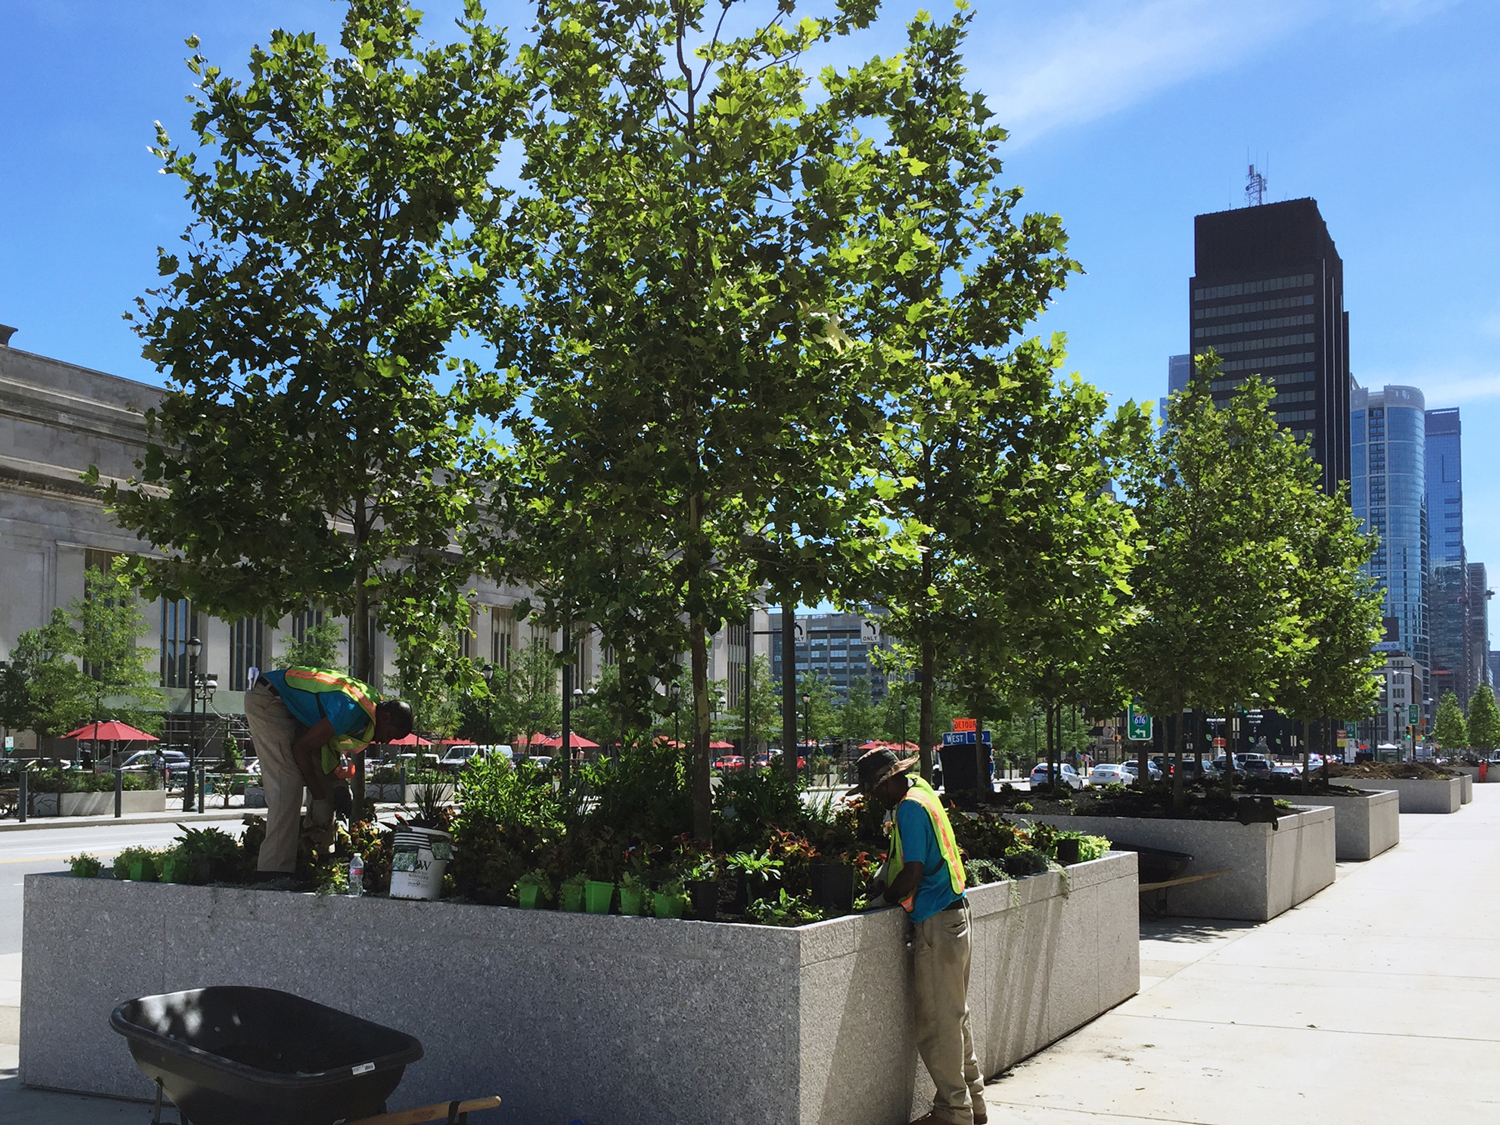 Green City Works installed plants in beds lining Market Street, outside of Brandywine Realty Trust's IRS Building.